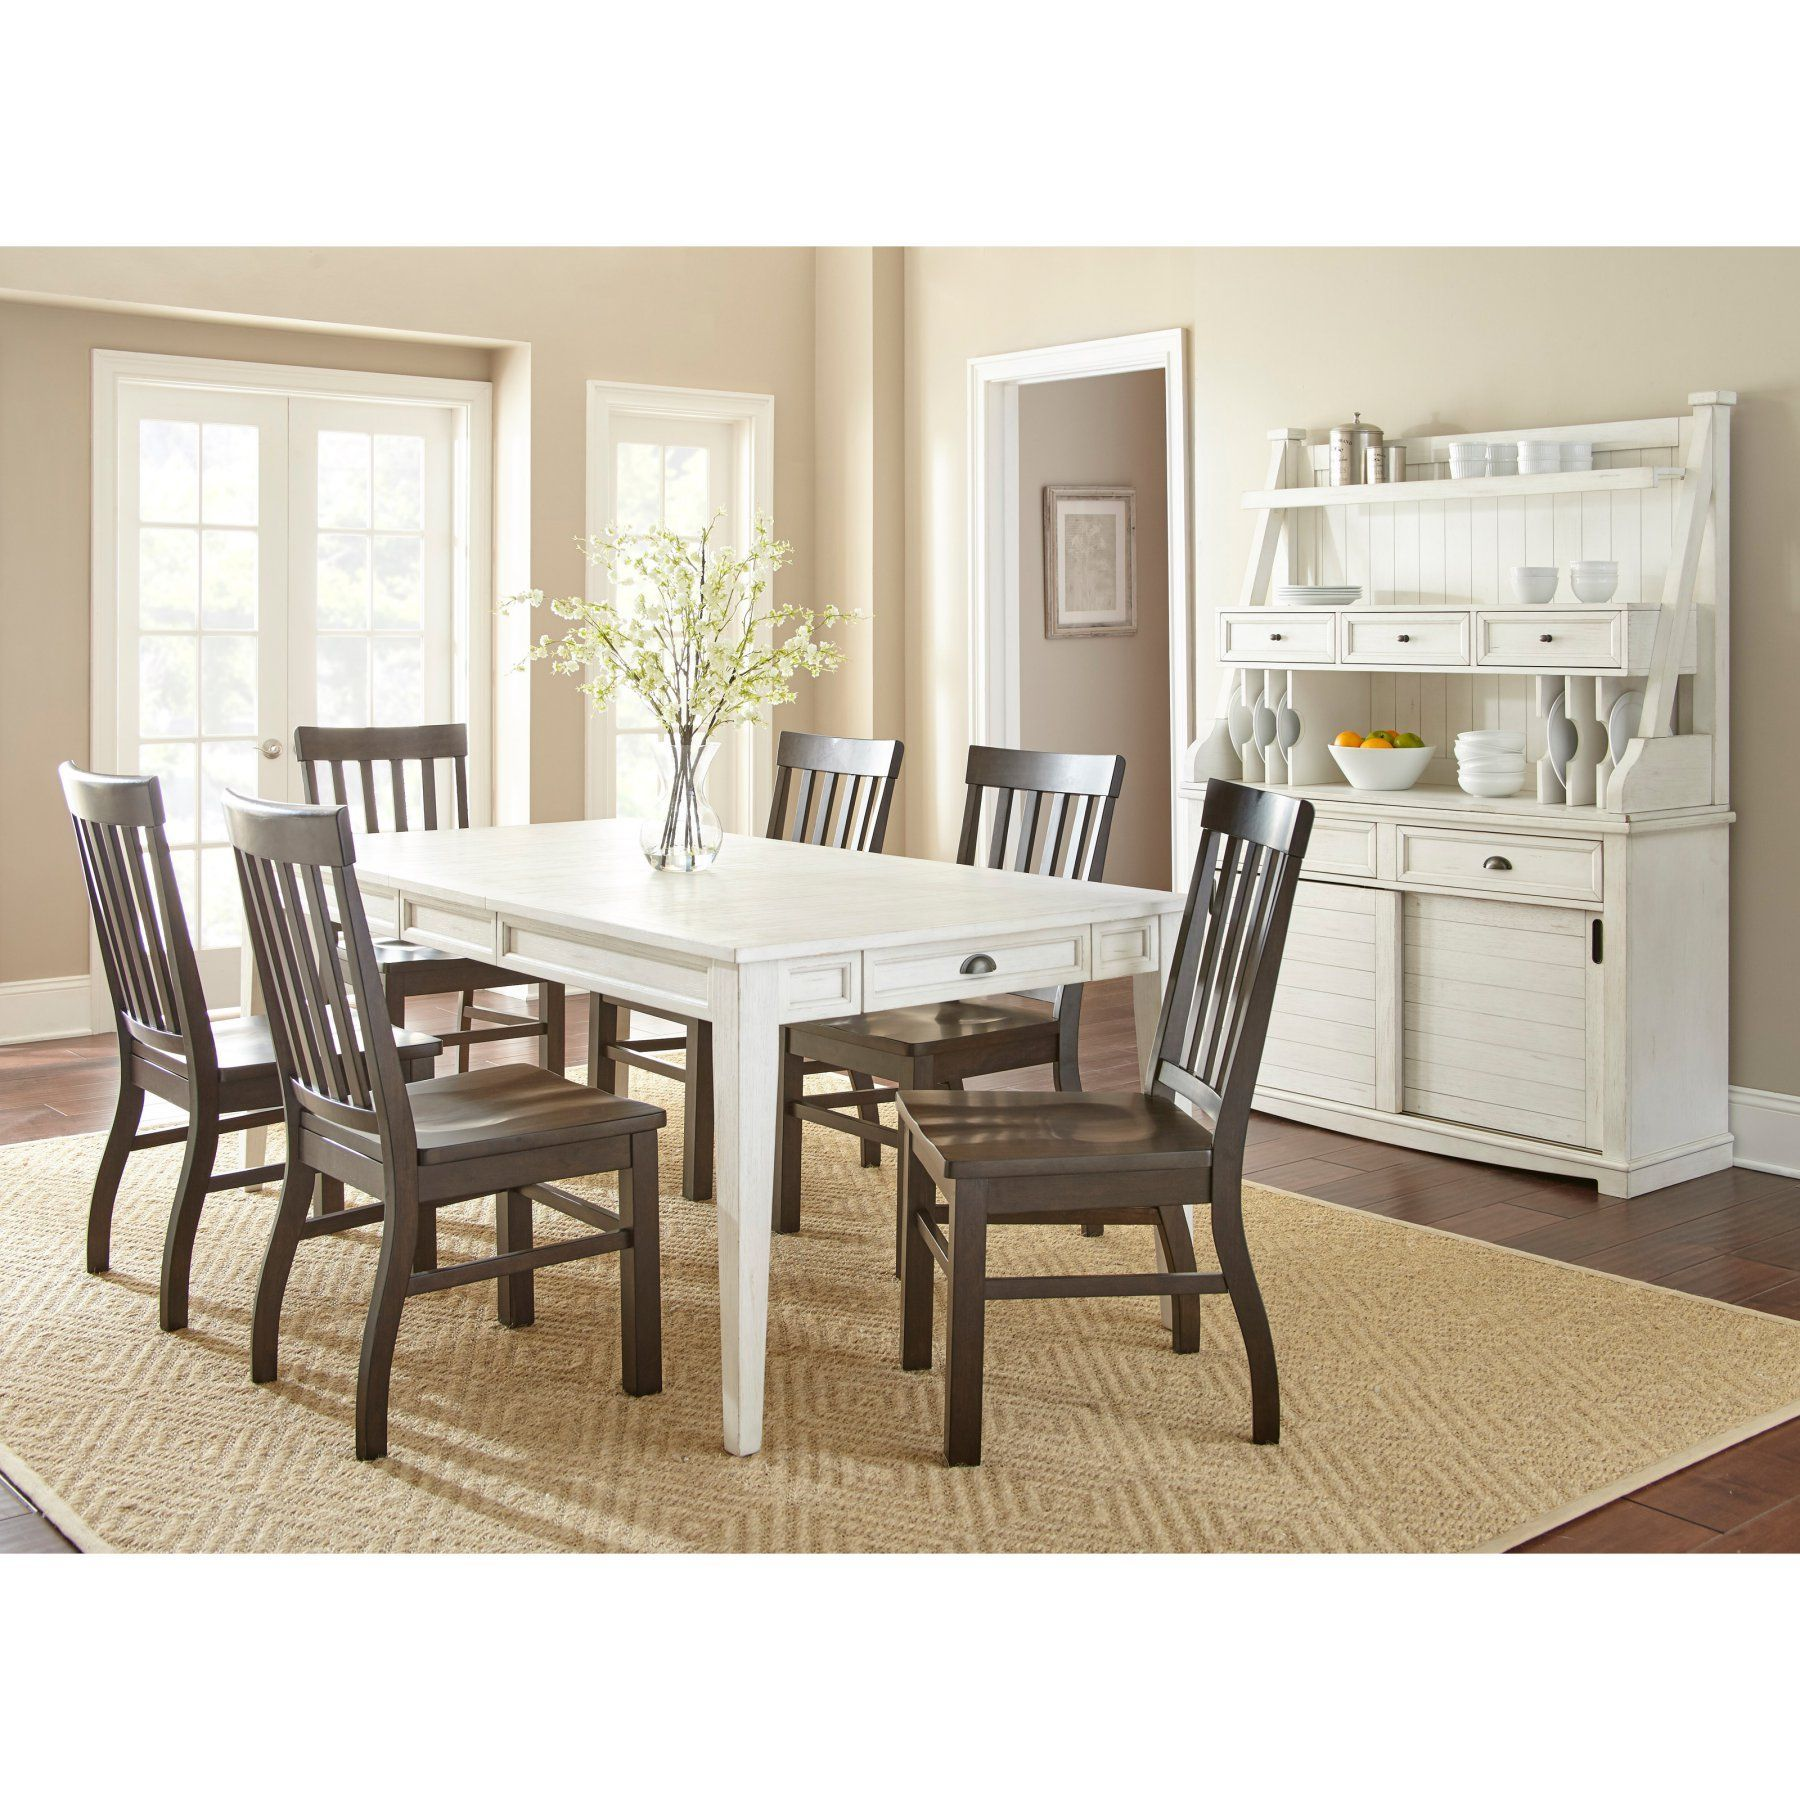 Steve Silver Co Cayla White Dining Table CY400TW